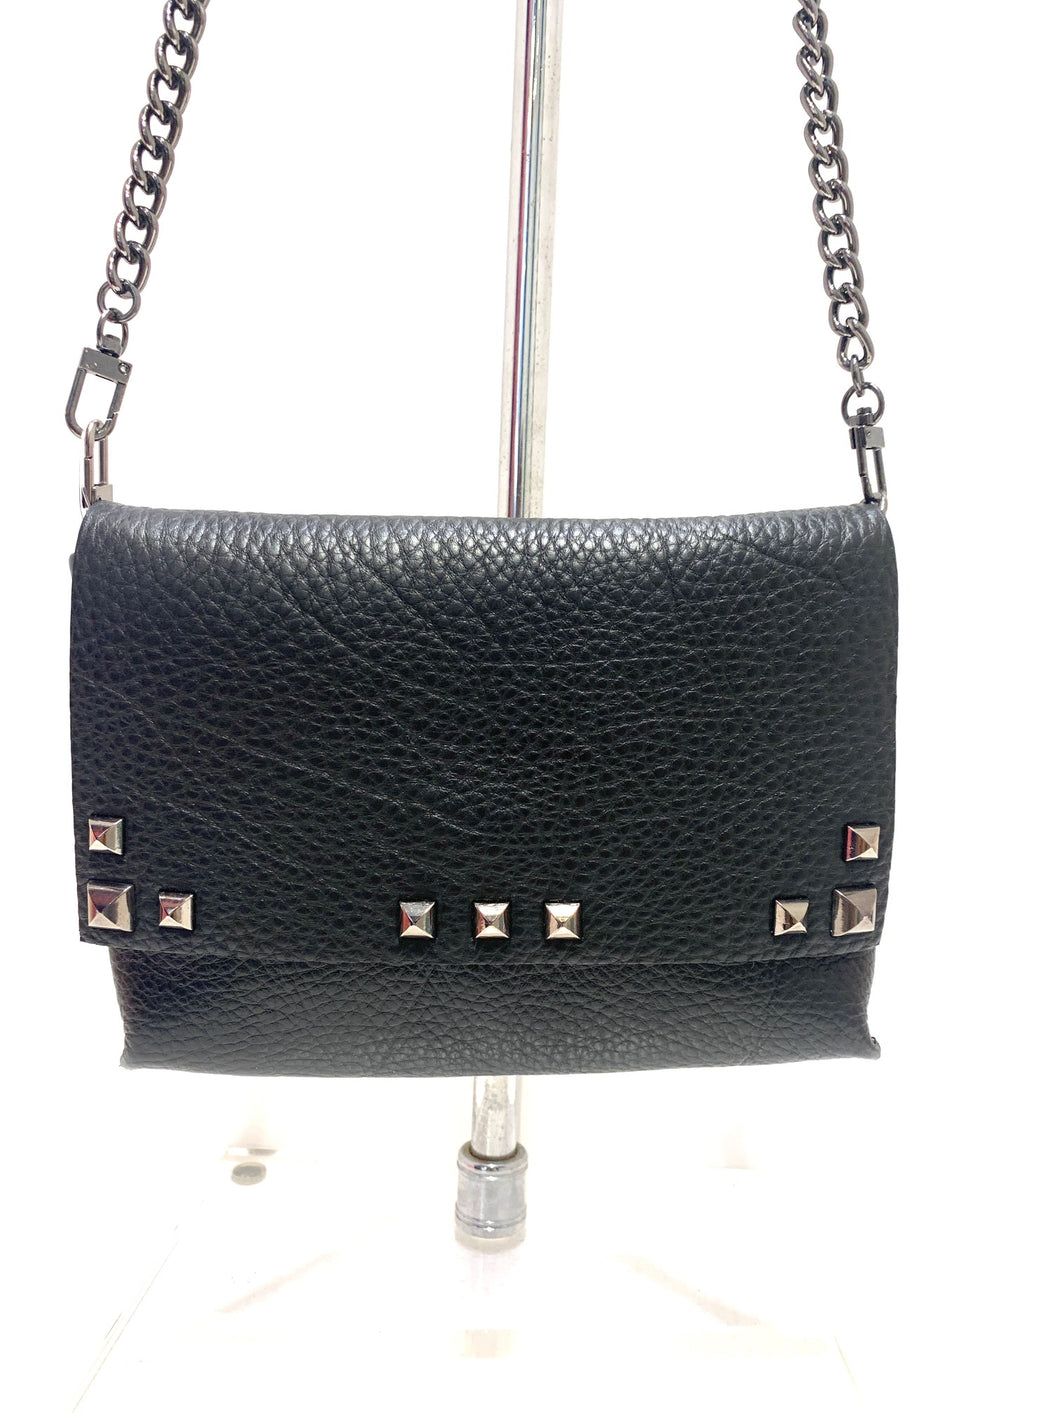 Evoke - Bahama Bag Black/Stud